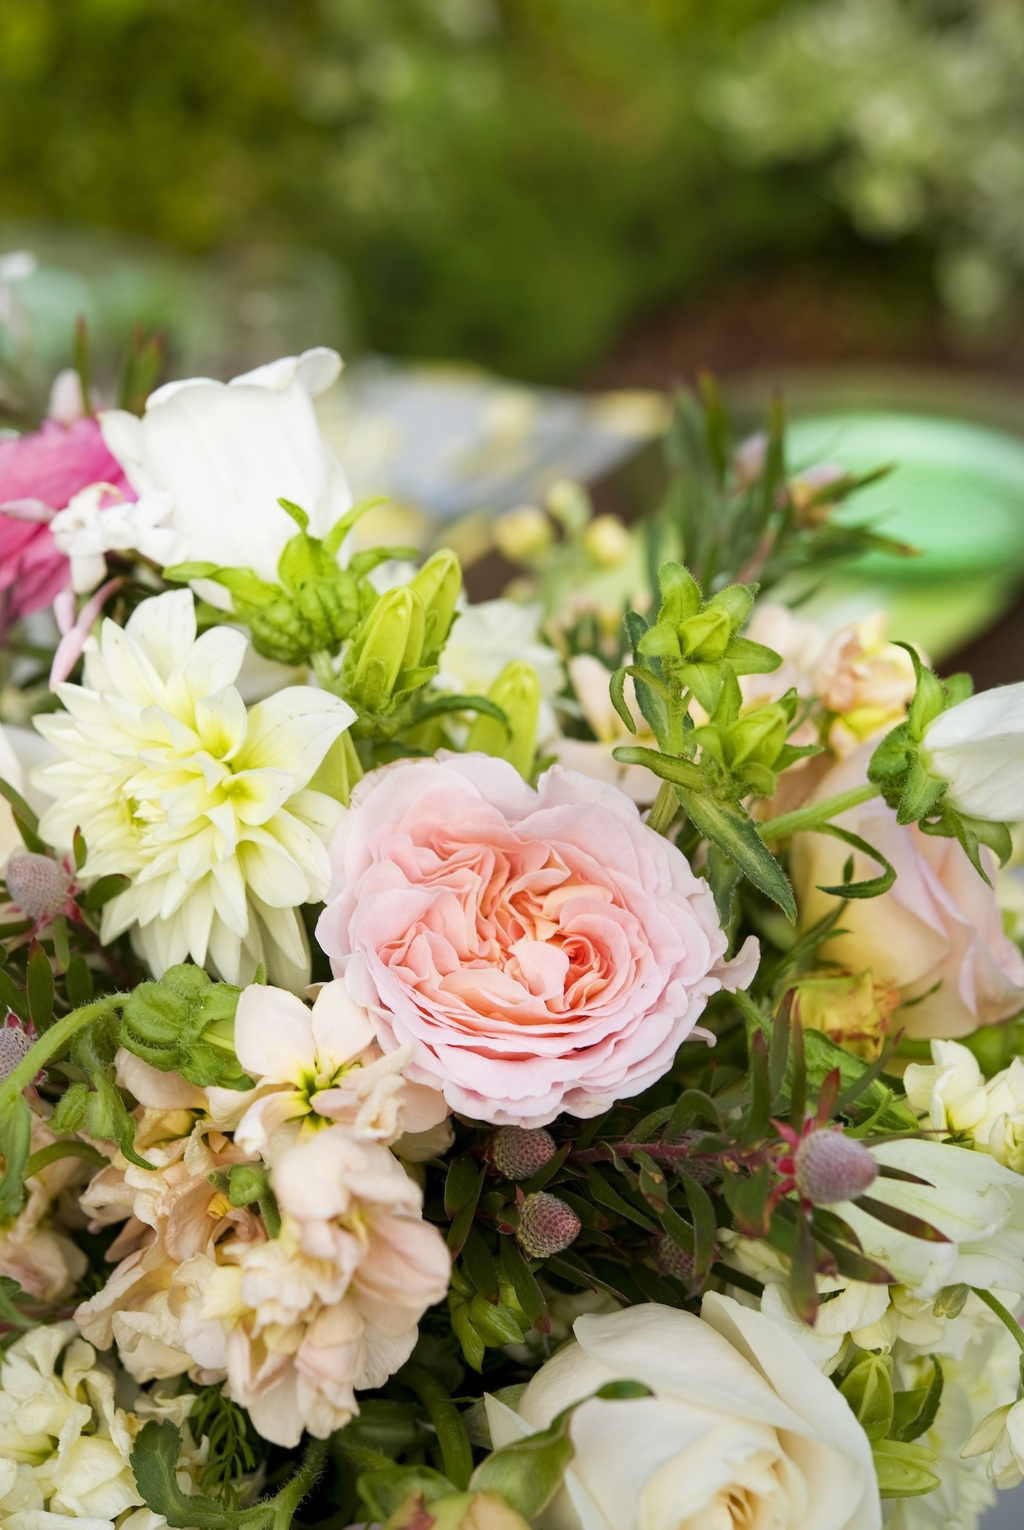 Romantic-wedding-centerpiece-pink-ivory-wedding-flowers.full